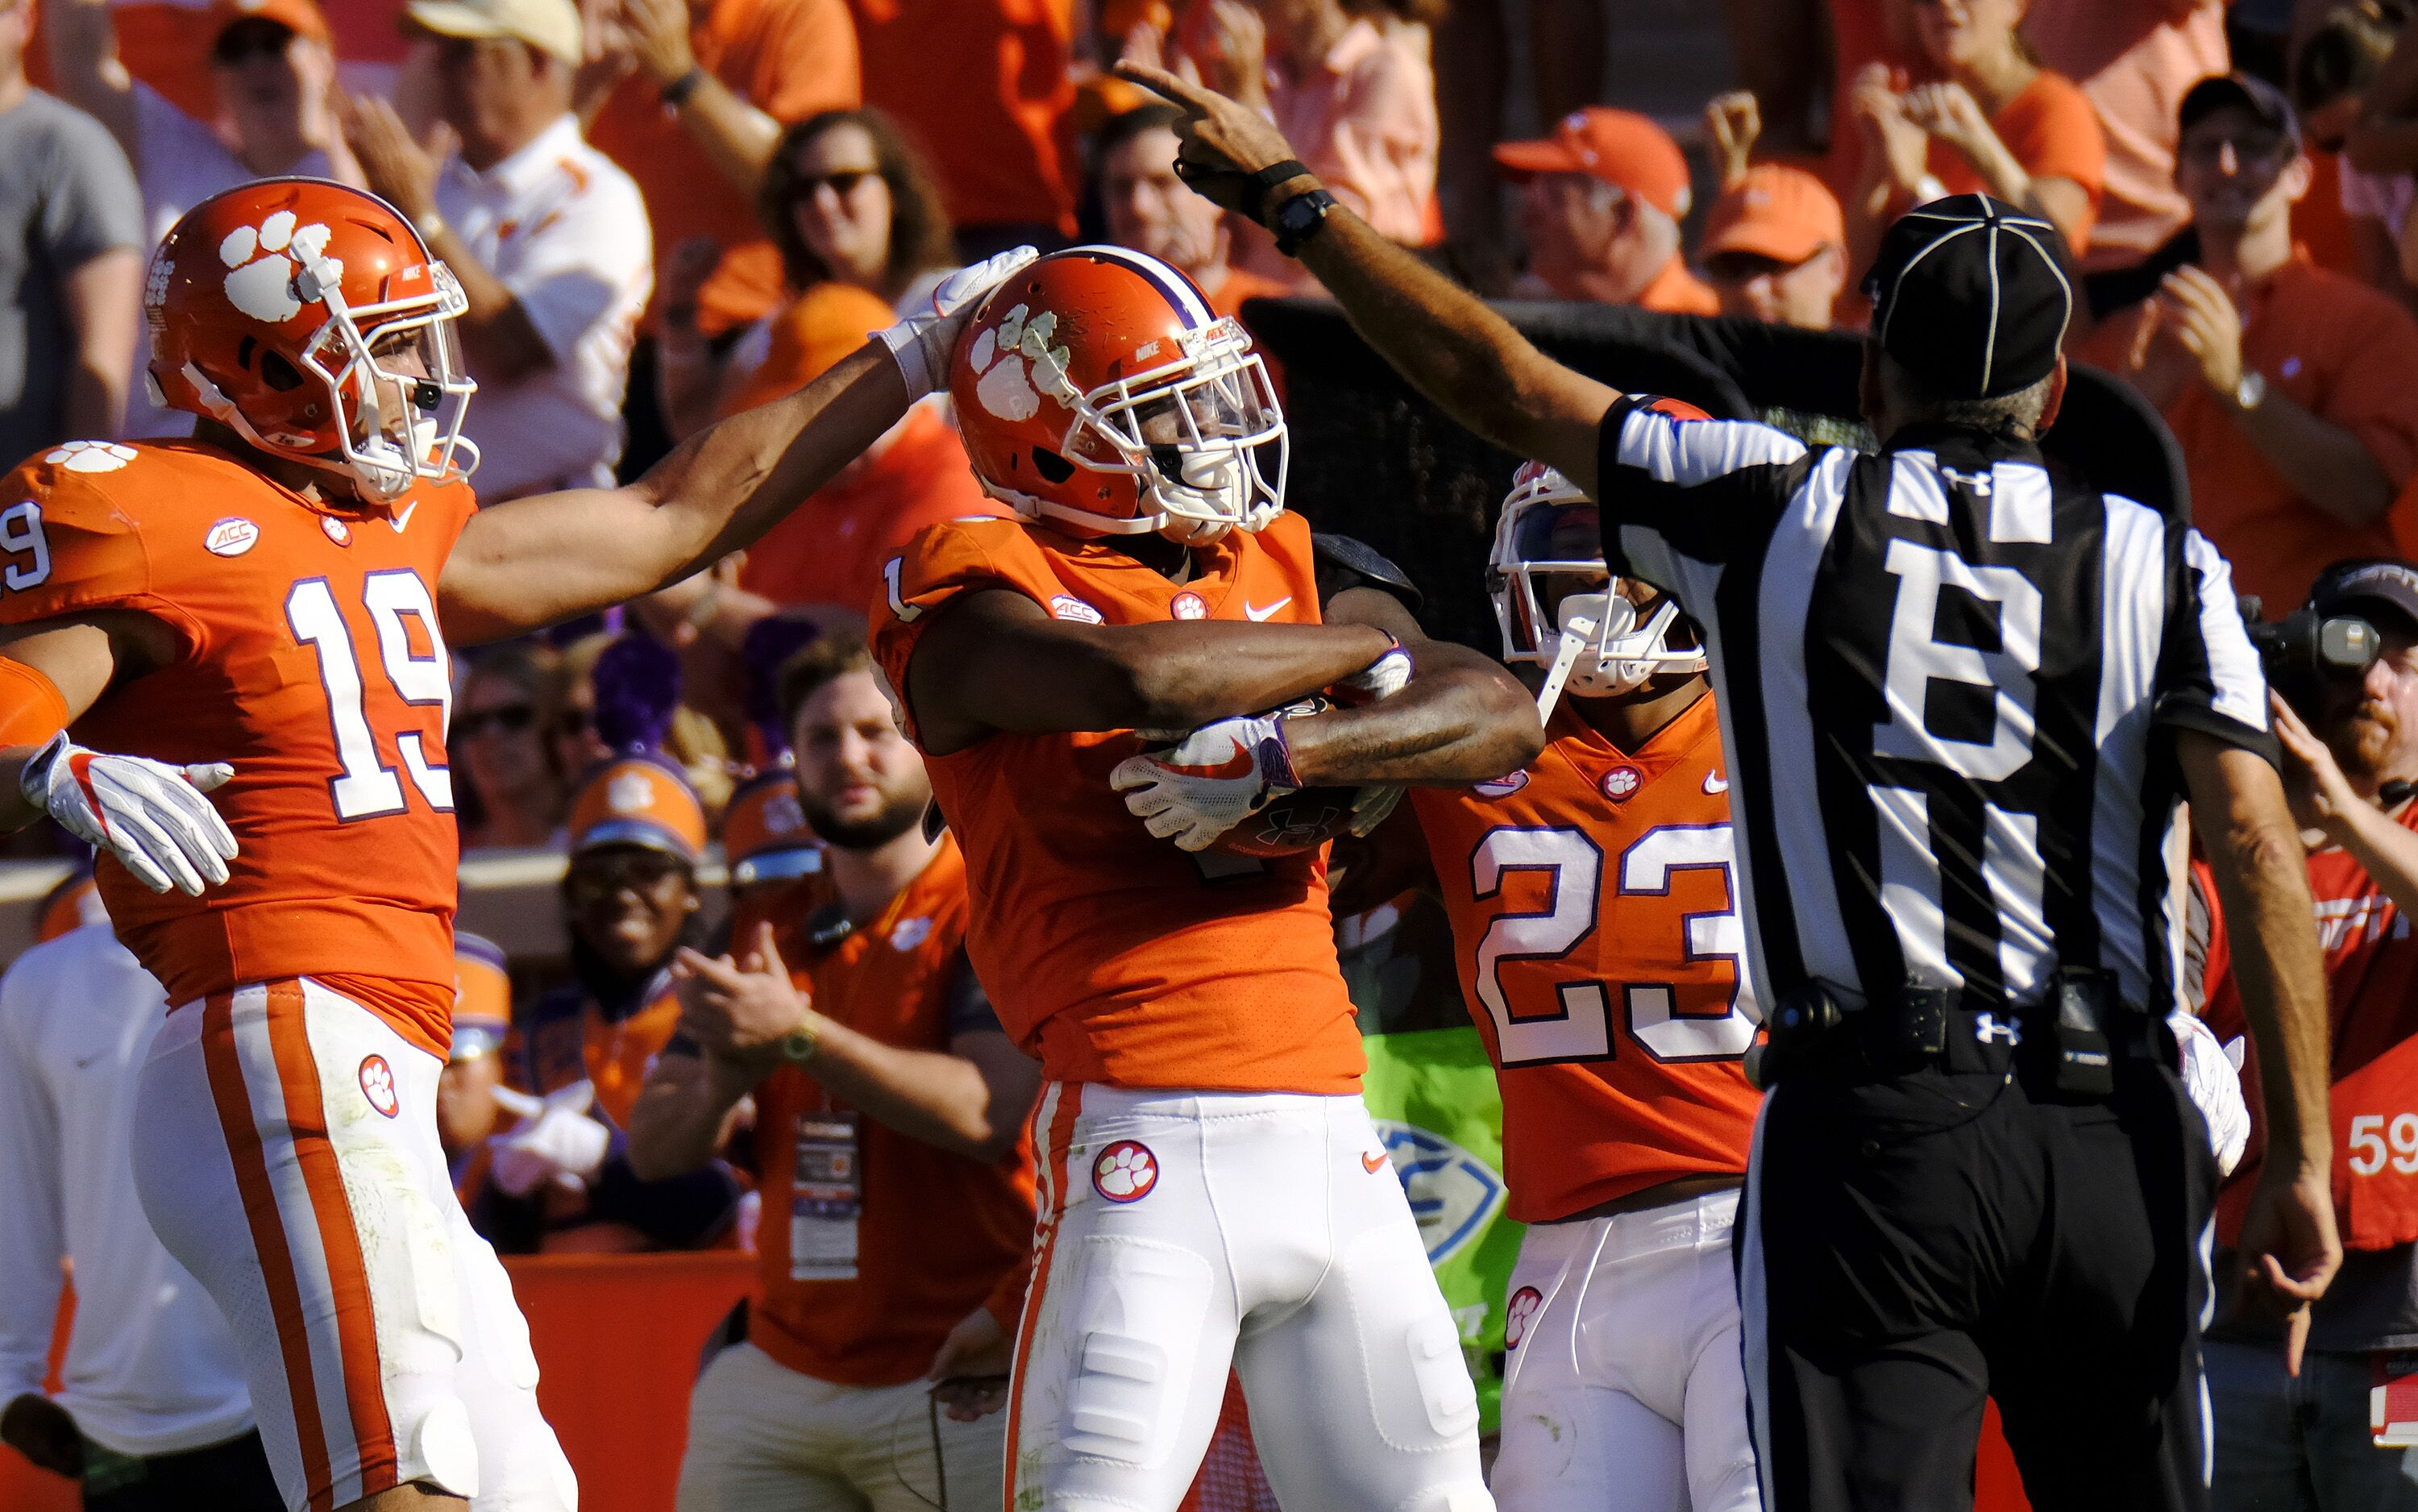 ACC power rankings - Week 5: Clemson holds strong, FSU is done